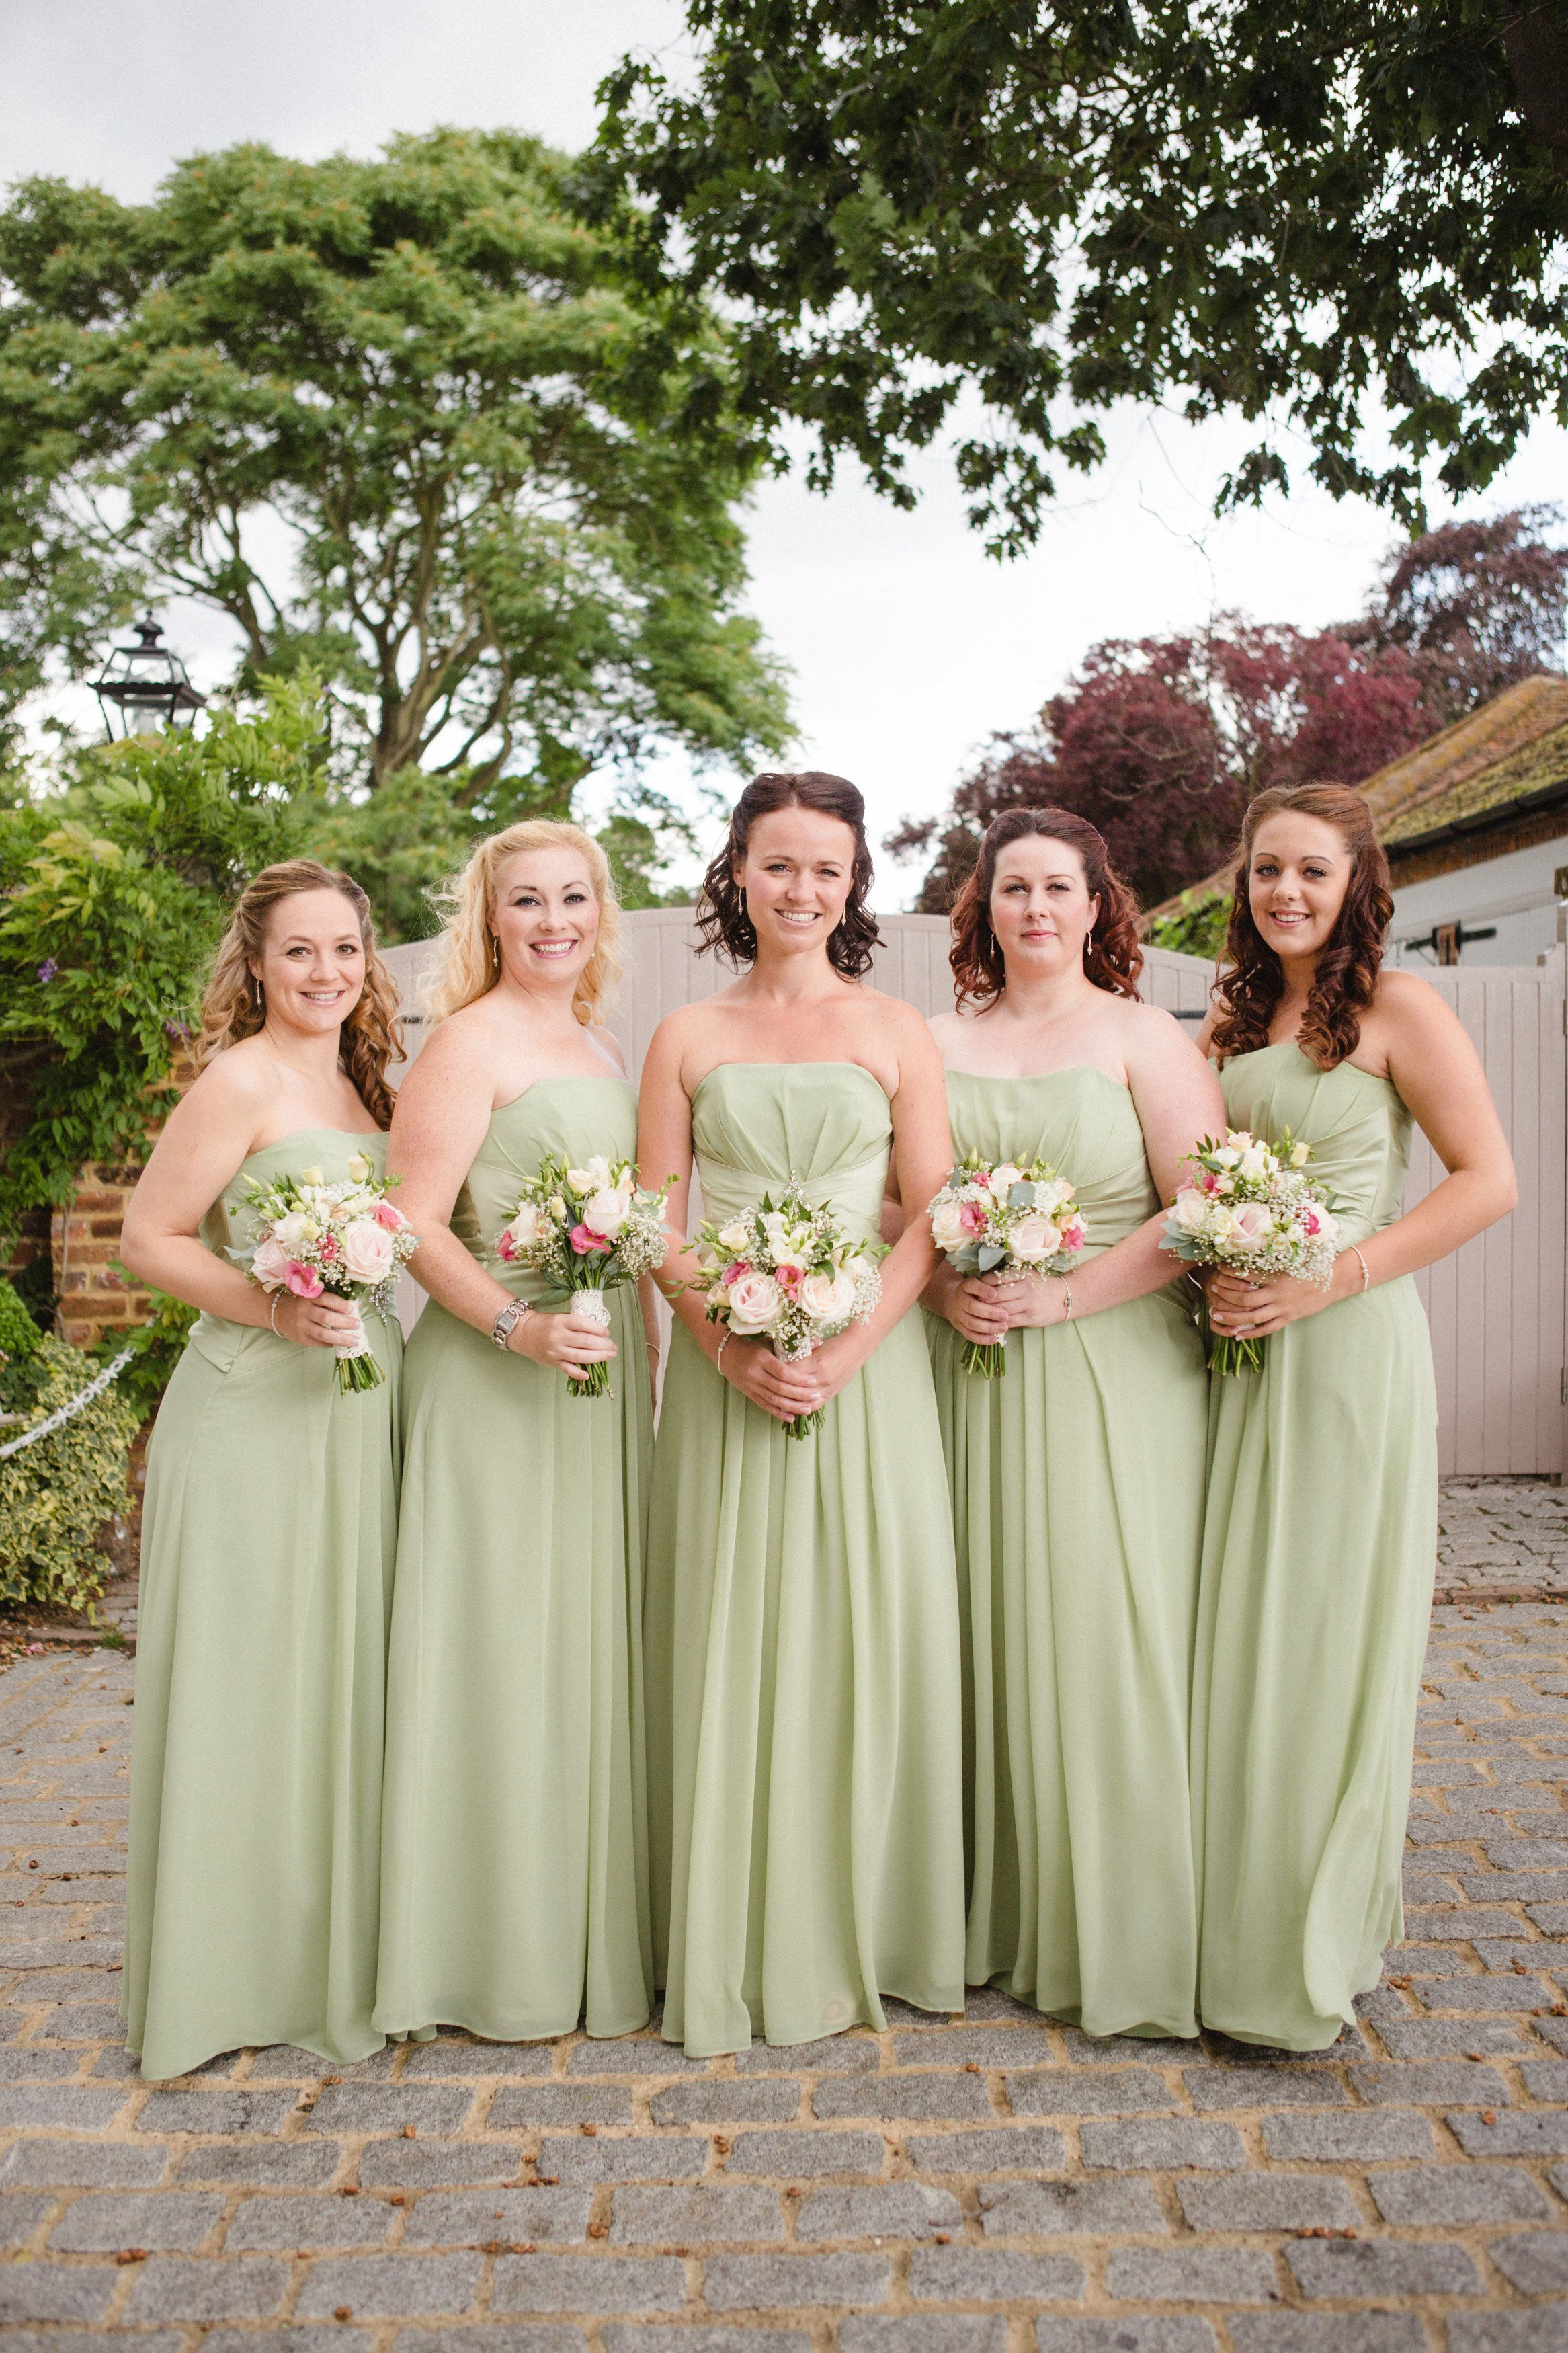 Green bridesmaids ebony rose monica bridesmaids pinterest green bridesmaids ebony rose monica ombrellifo Choice Image